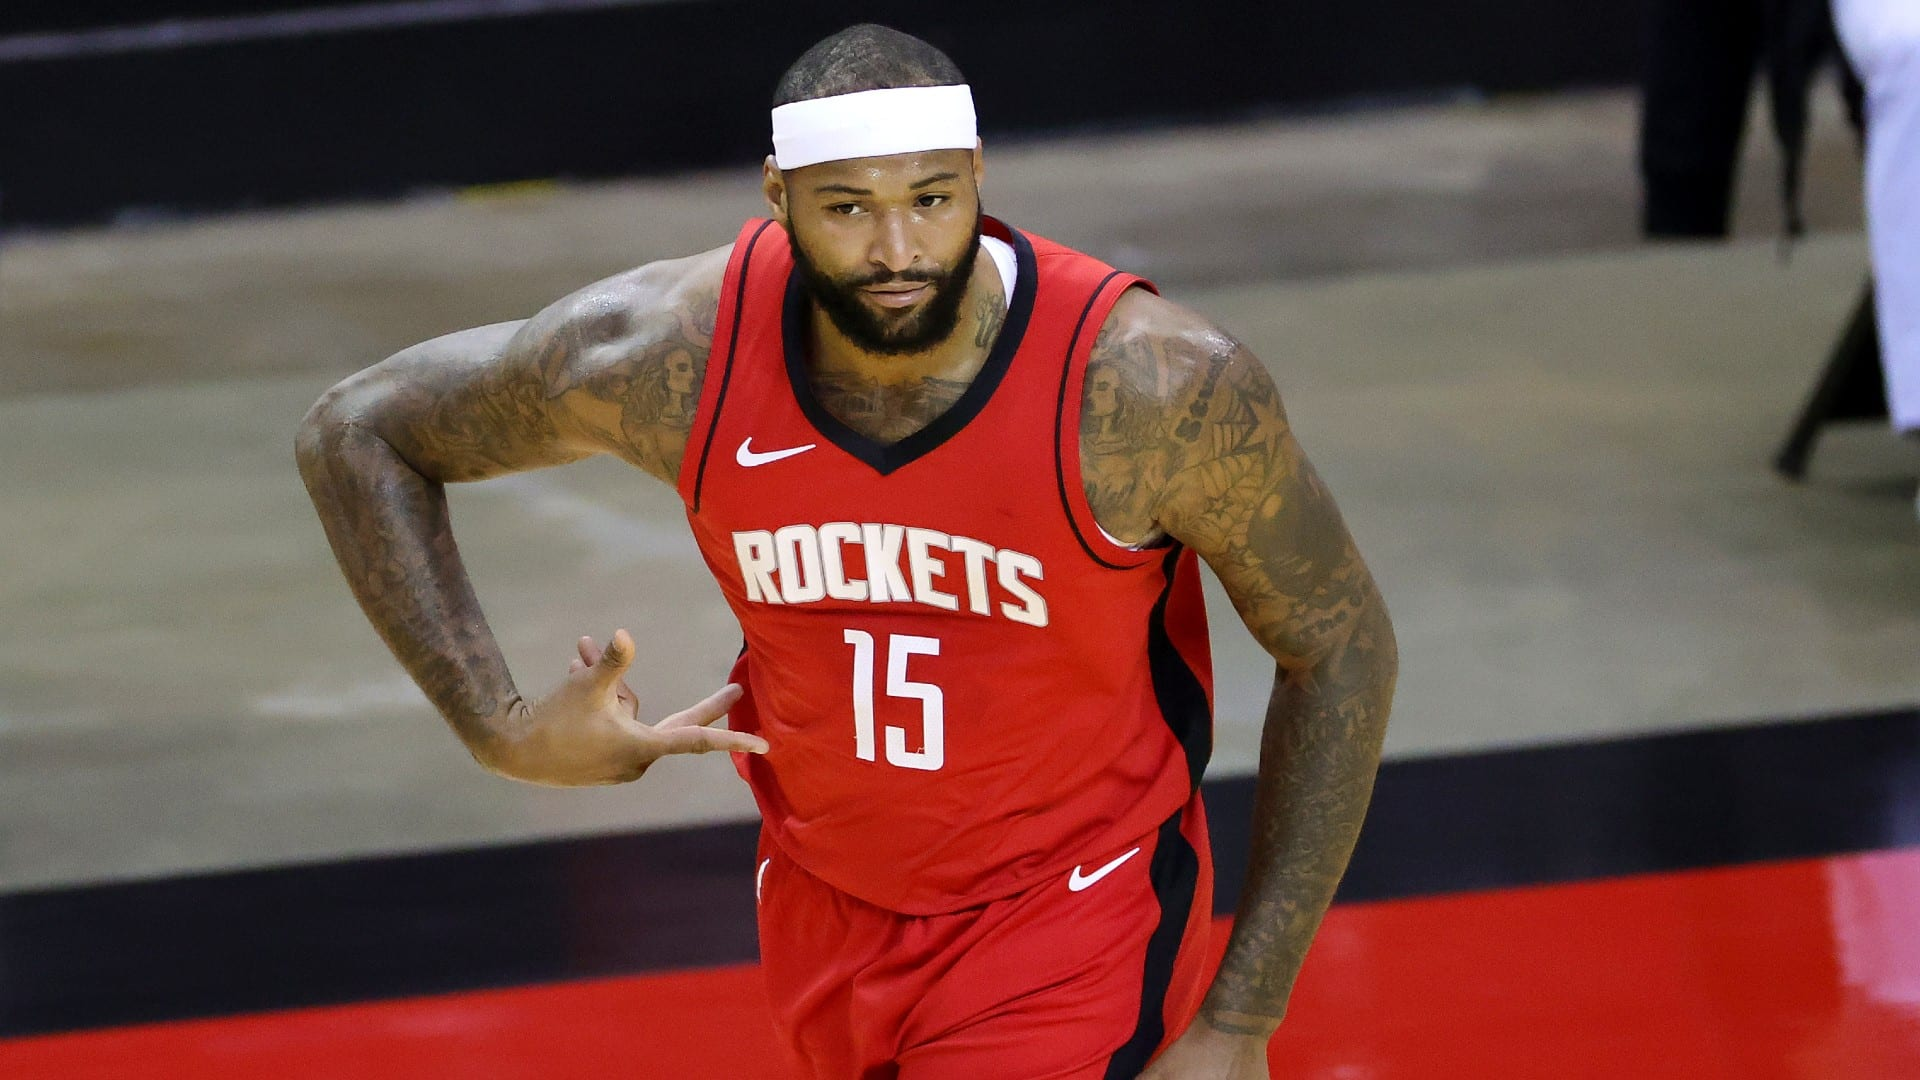 DeMarcus Cousins Out of Houston, Eyeing Return To Lakers